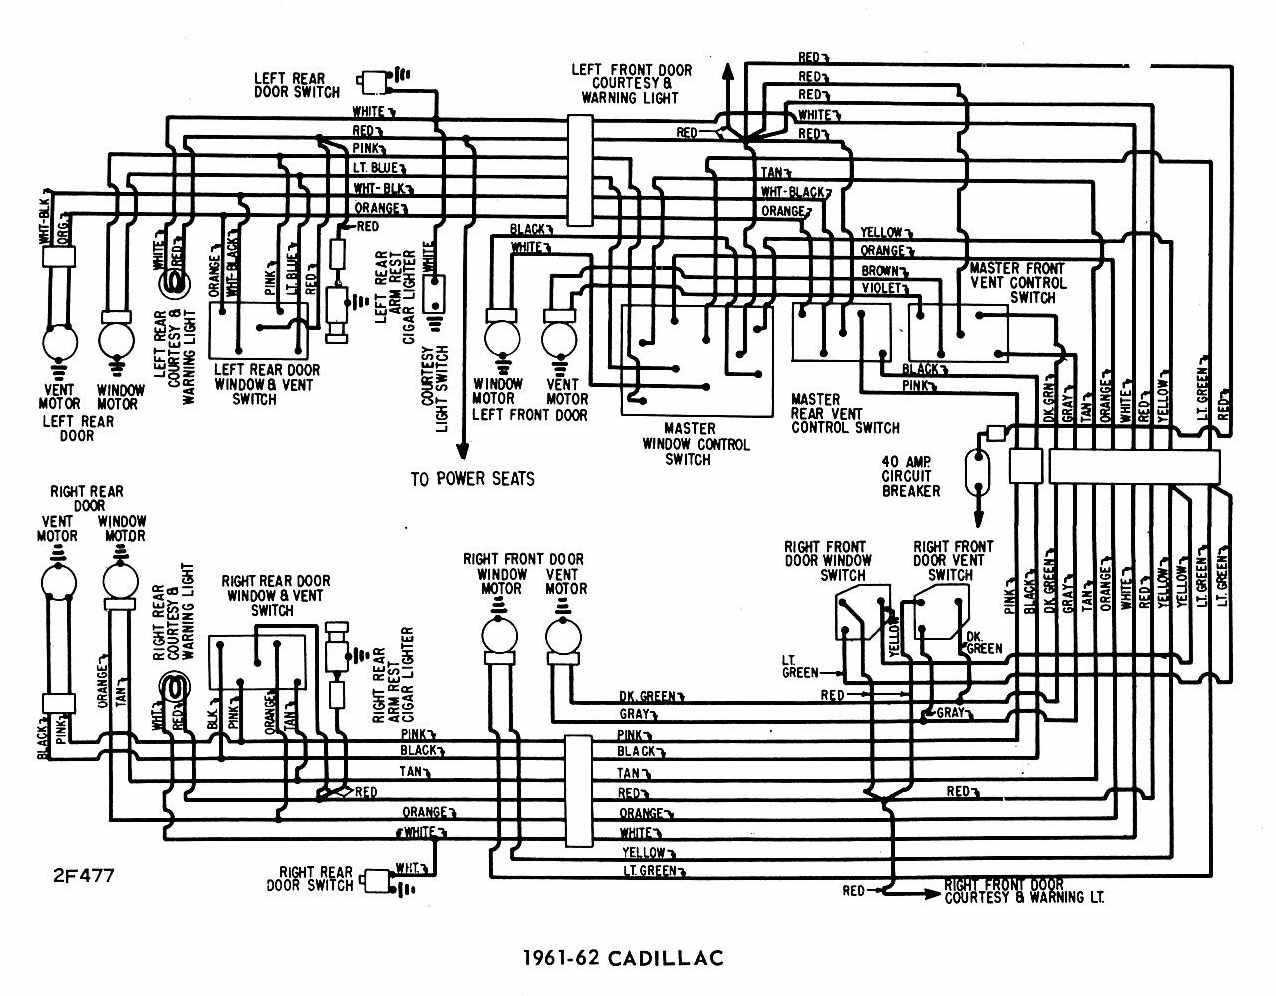 Jeep Cj7 Ignition Switch Wiring Diagram